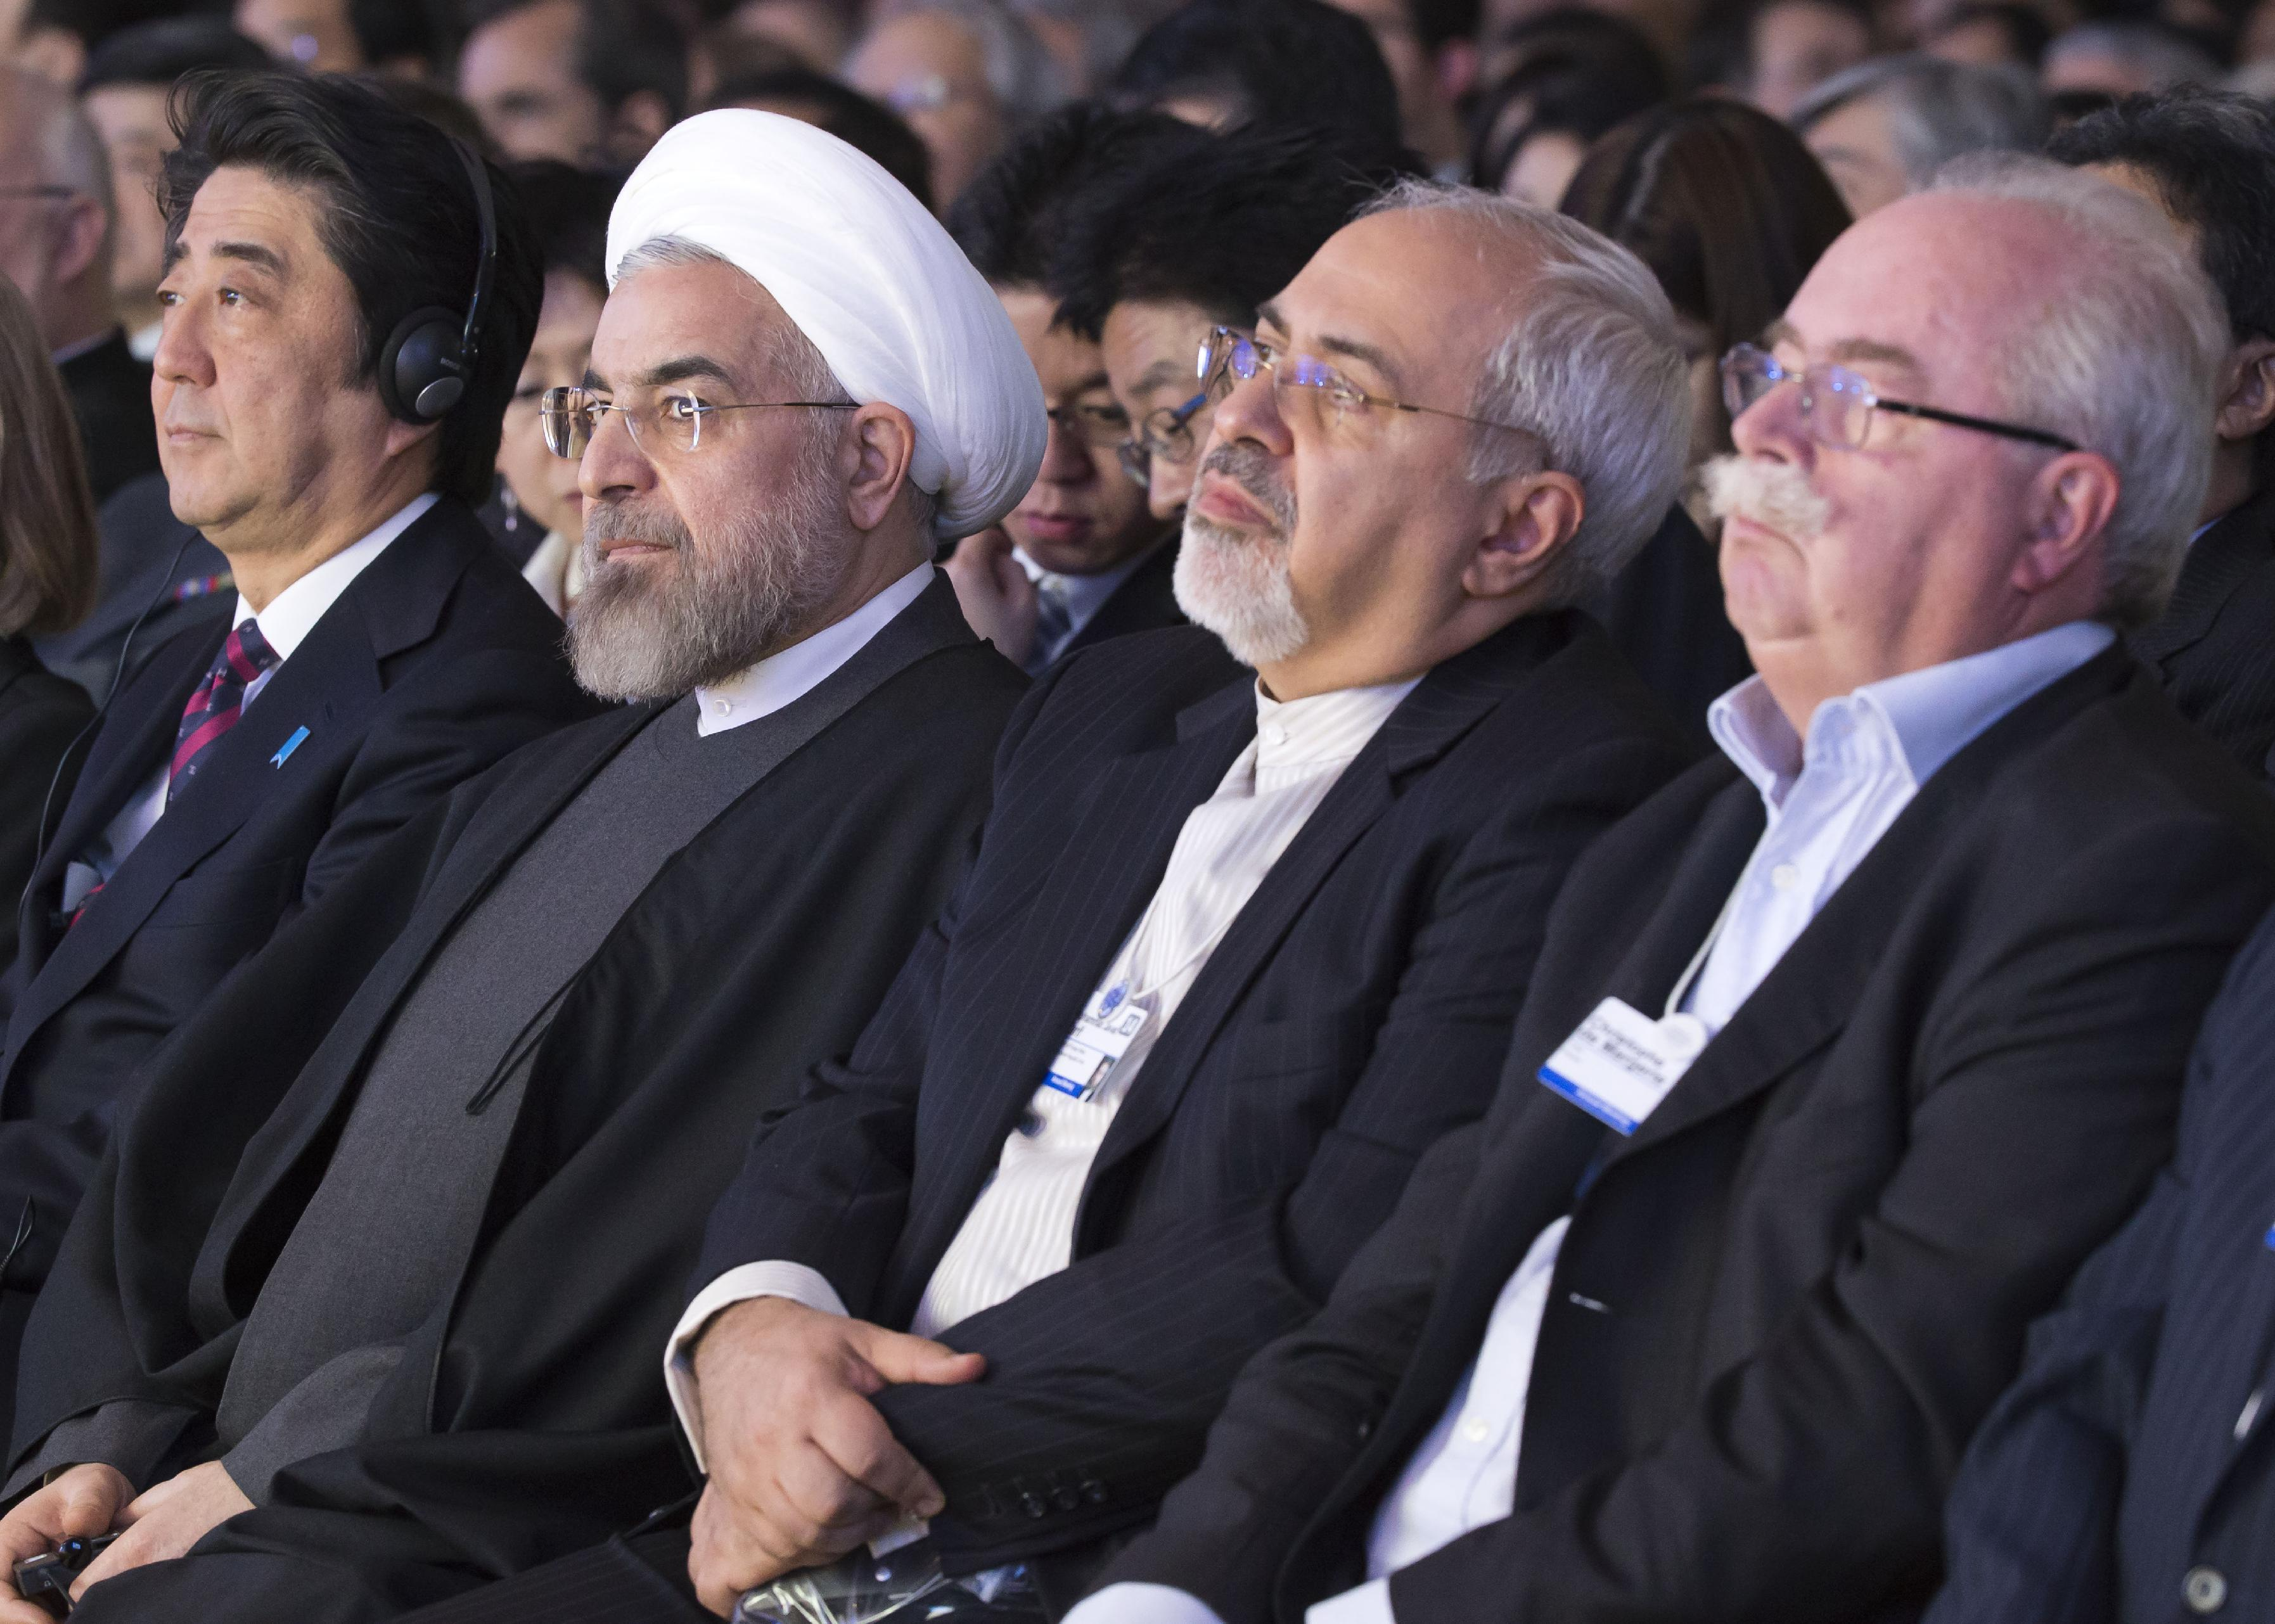 From left, Japanese prime minister Shinzo Abe, Iranian President Hassan Rouhani, Iranian Foreign Minister Mohammad Javad Zarif and CEO of Total, Christophe de Margerie, attend a session of the World Economic Forum in Davos, Switzerland, Wednesday, Jan. 22, 2014. Leaders gathered in the Swiss ski resort of Davos have made it a top priority to push to reshape the global economy and cut global warming by shifting to cleaner energy sources. (AP Photo/Michel Euler)